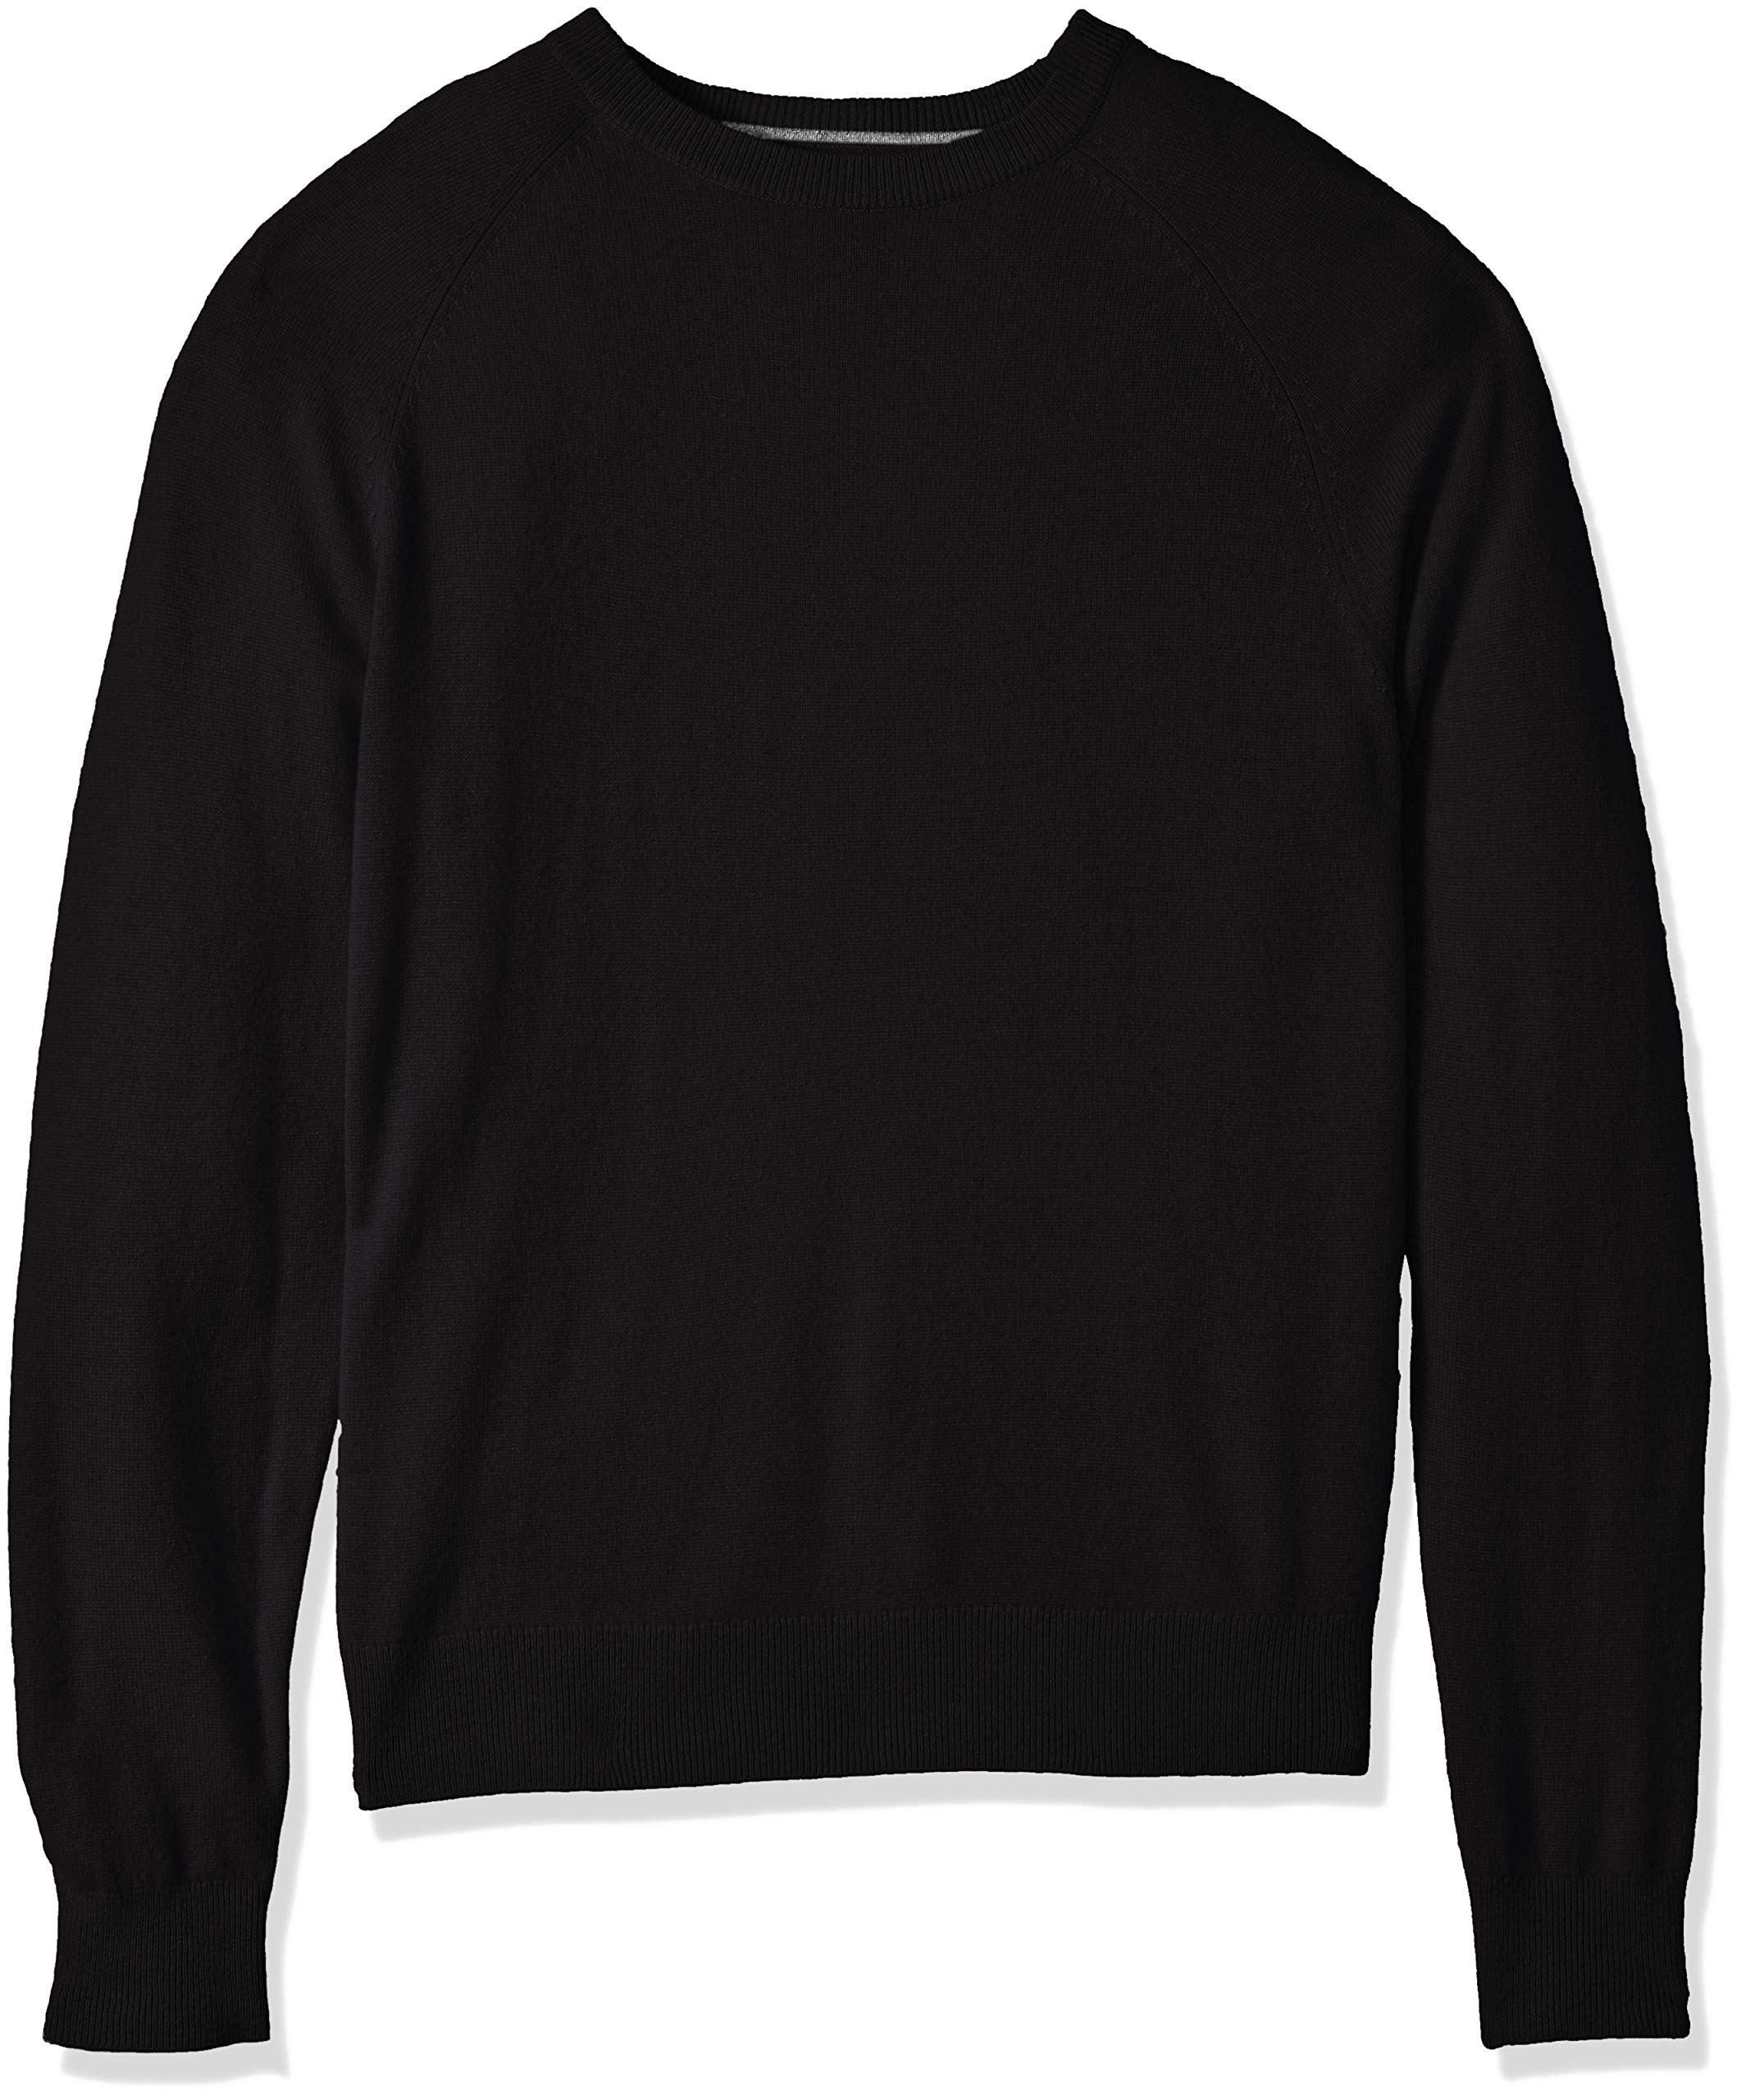 BUTTONED DOWN Men's 100% Premium Cashmere Crewneck Sweater, Black, Small